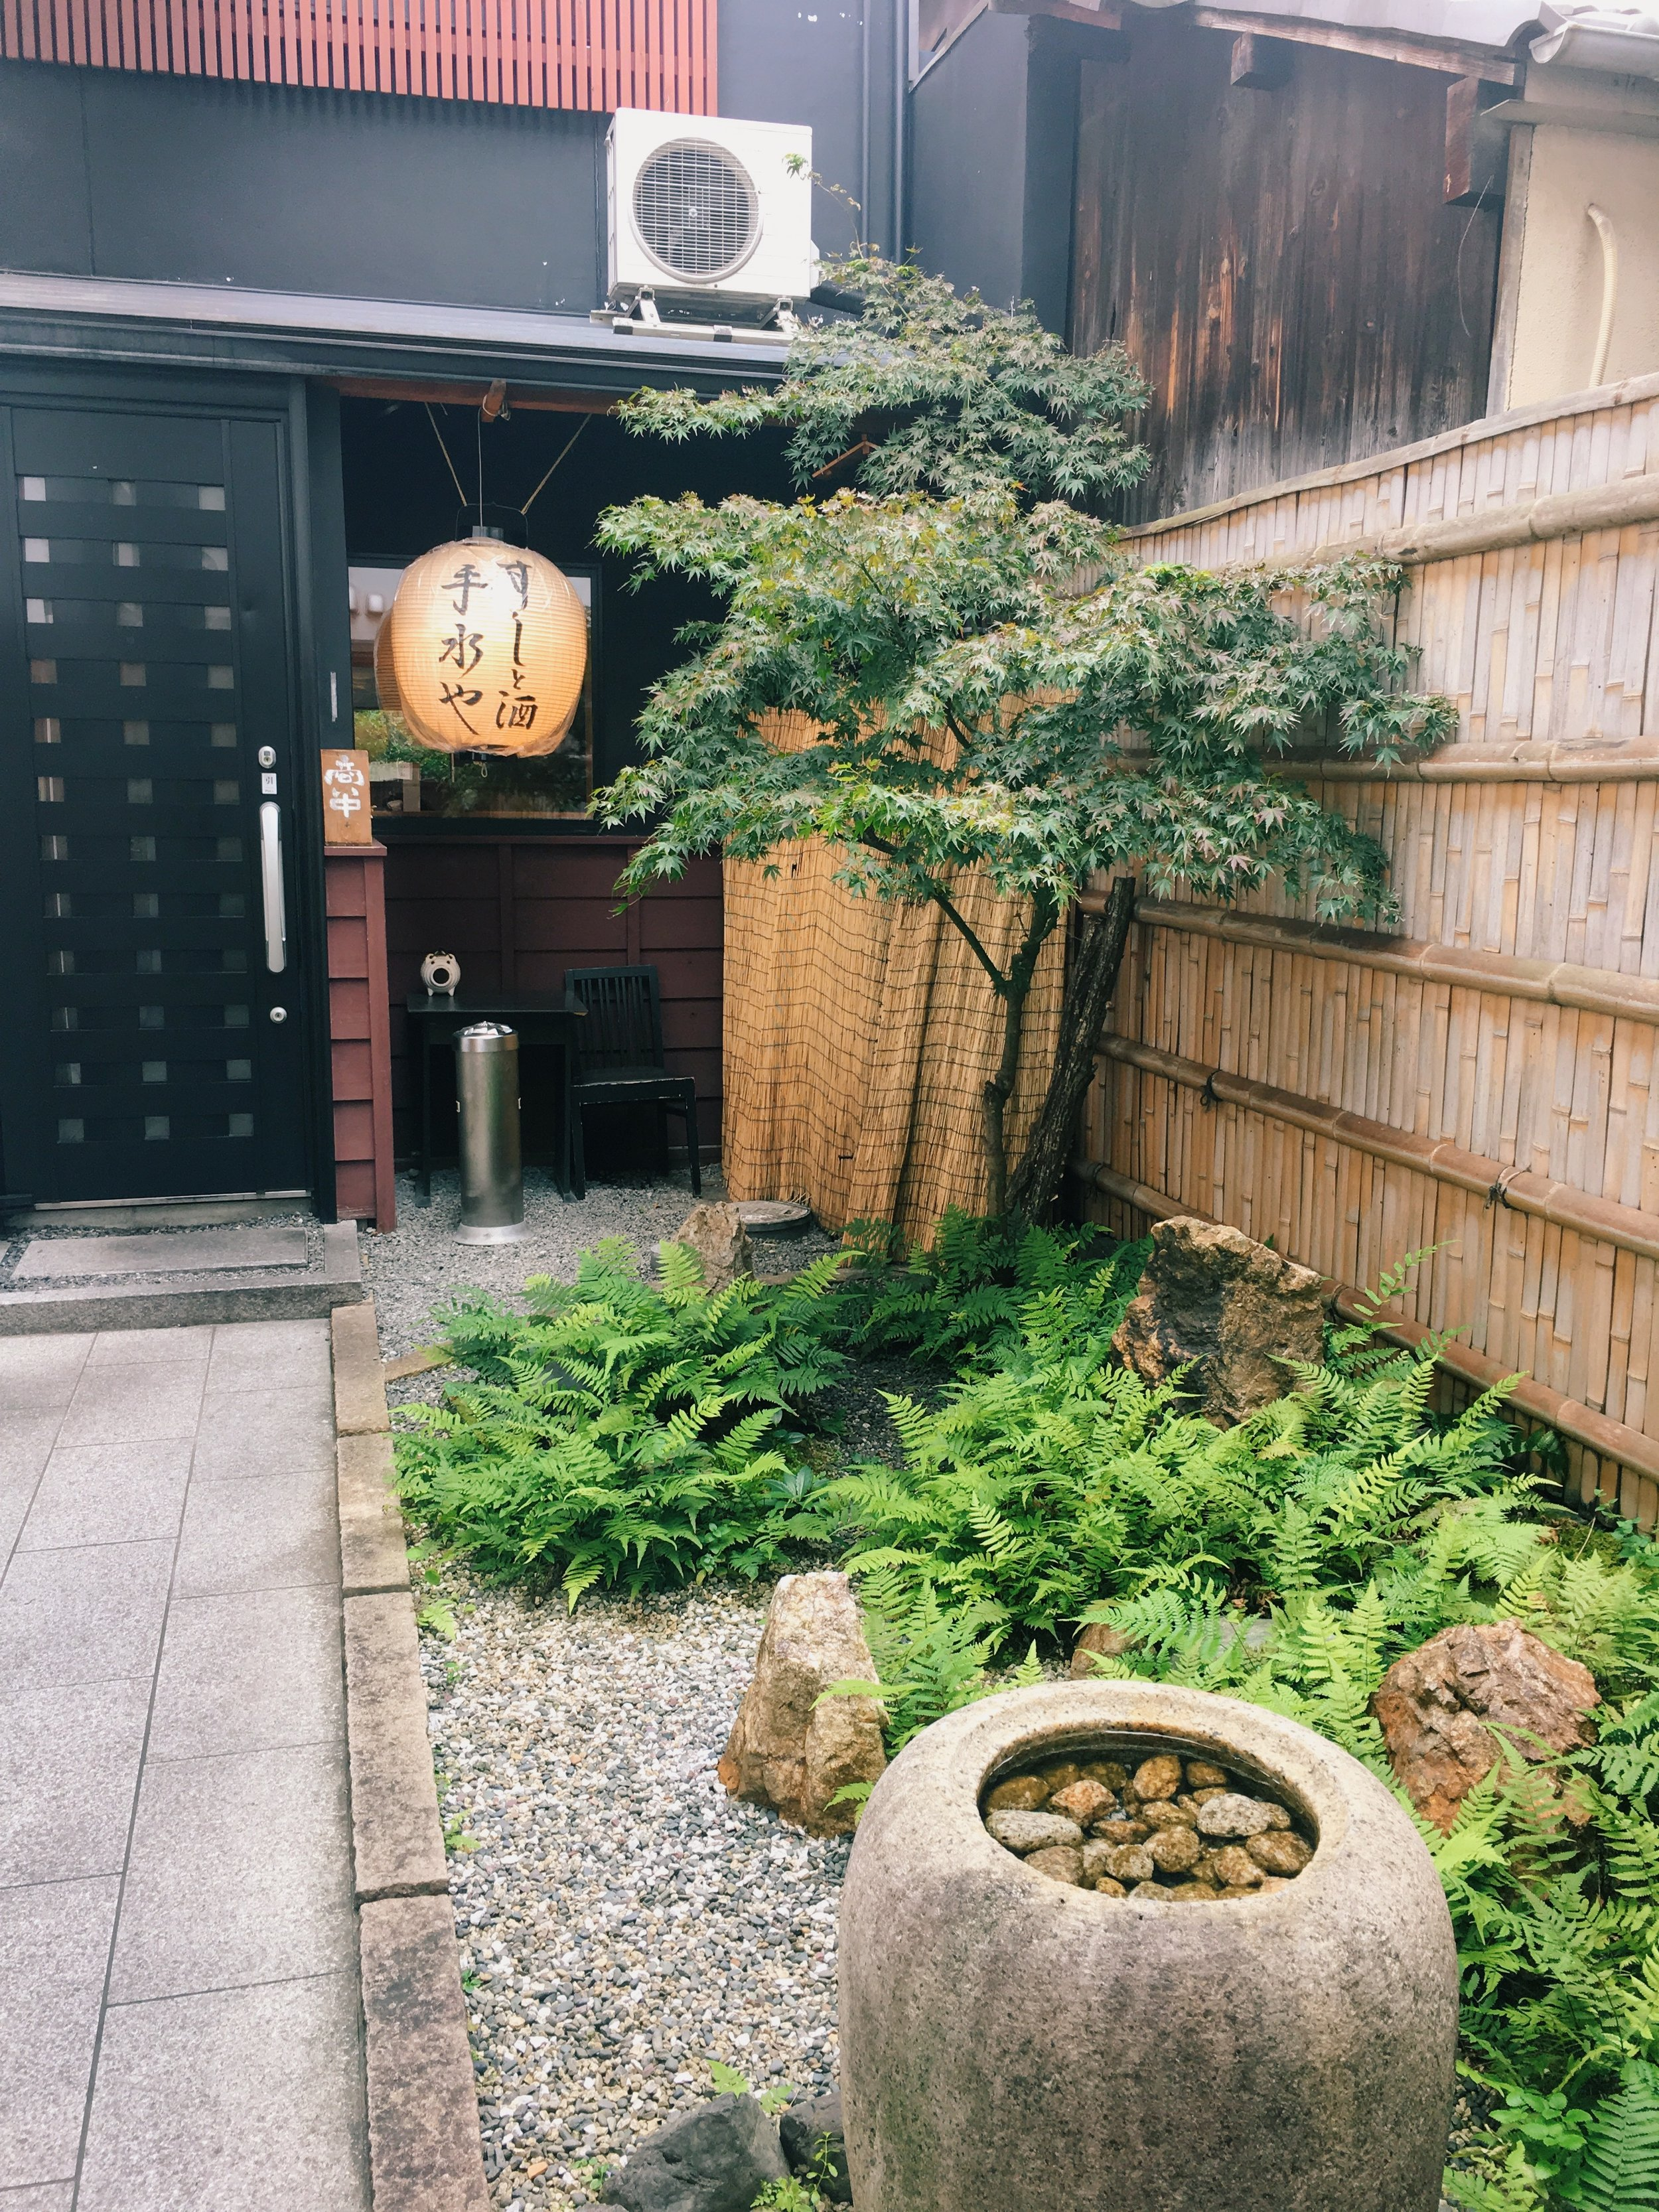 I had my last meal at this place in Kyoto, it is a little hiding restaurant through a laneway. And this is the laneway, how beautiful! The food is very nice too!